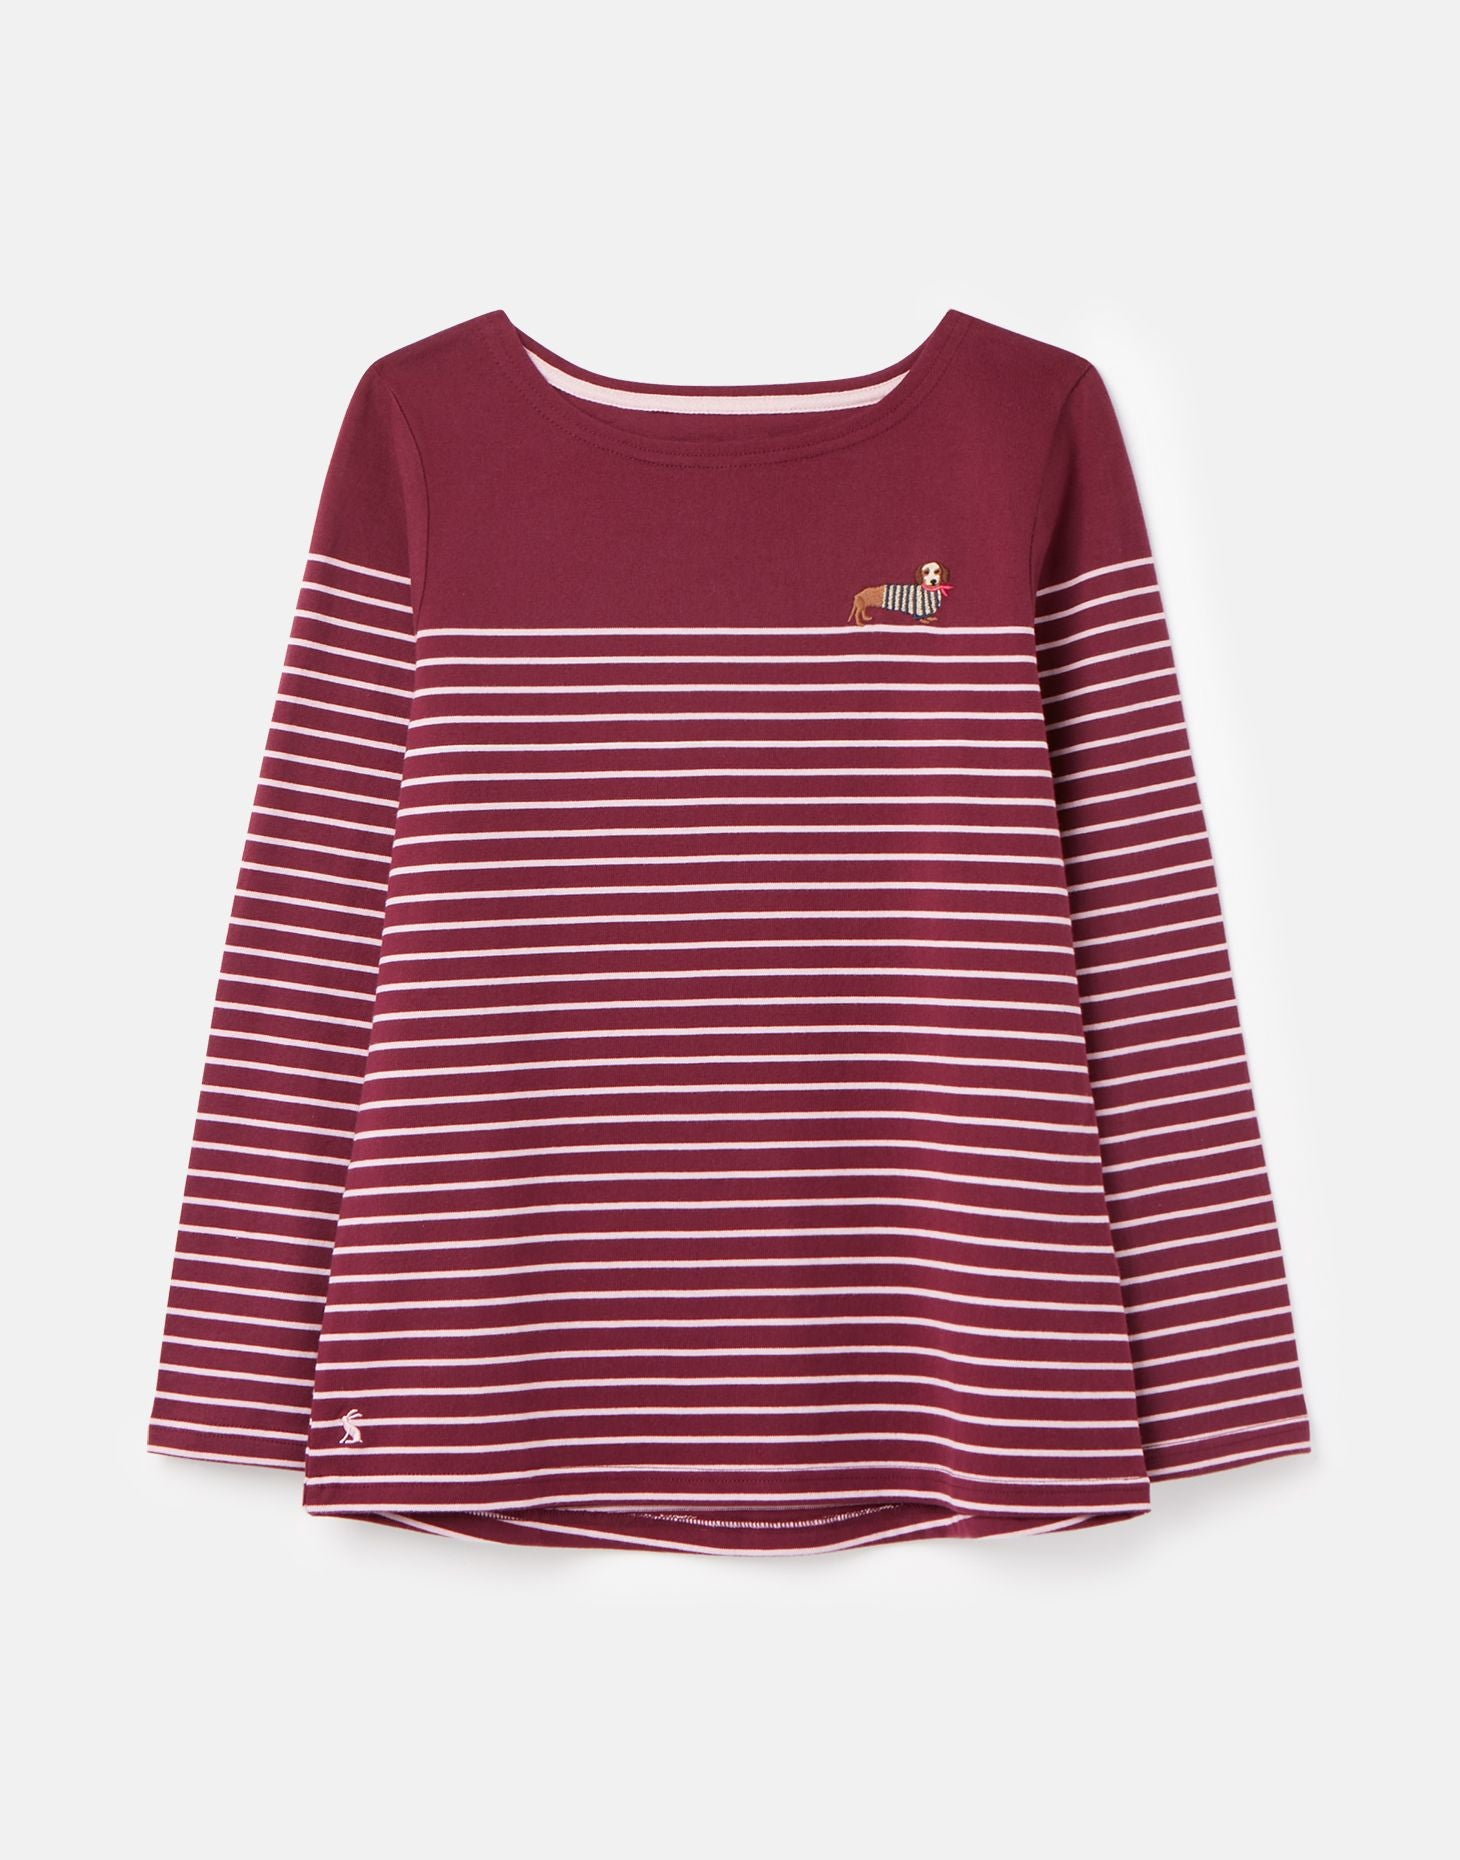 Harbour Jersey Shirt in Sausage Stripe